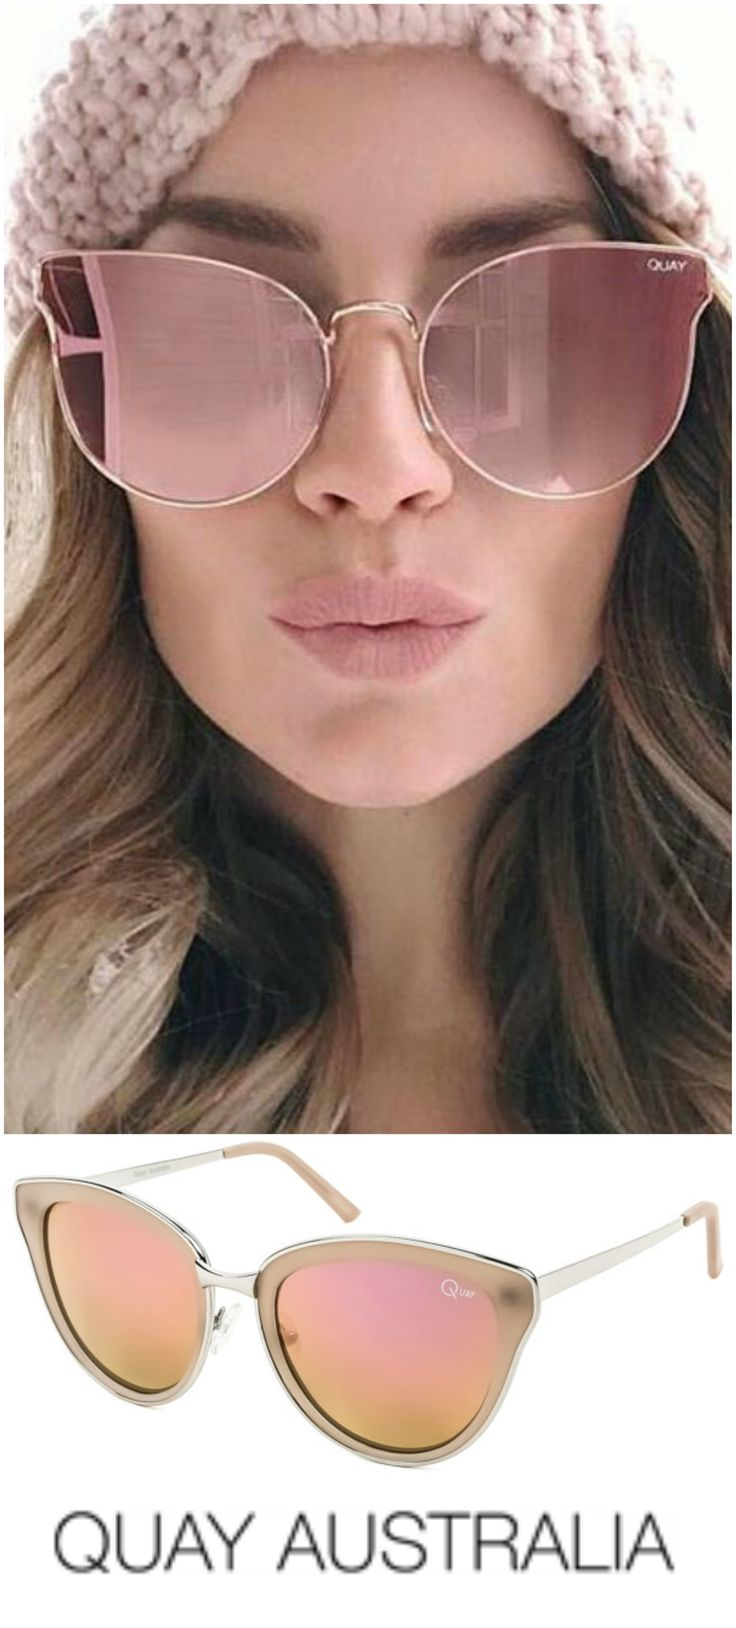 EVERY LITTLE THING Quay sunglasses  from SmartBuyGlasses UK are outstanding in style and quality with Pink Mirror Plastic lenses that can be upgraded to include prescription lens coatings.